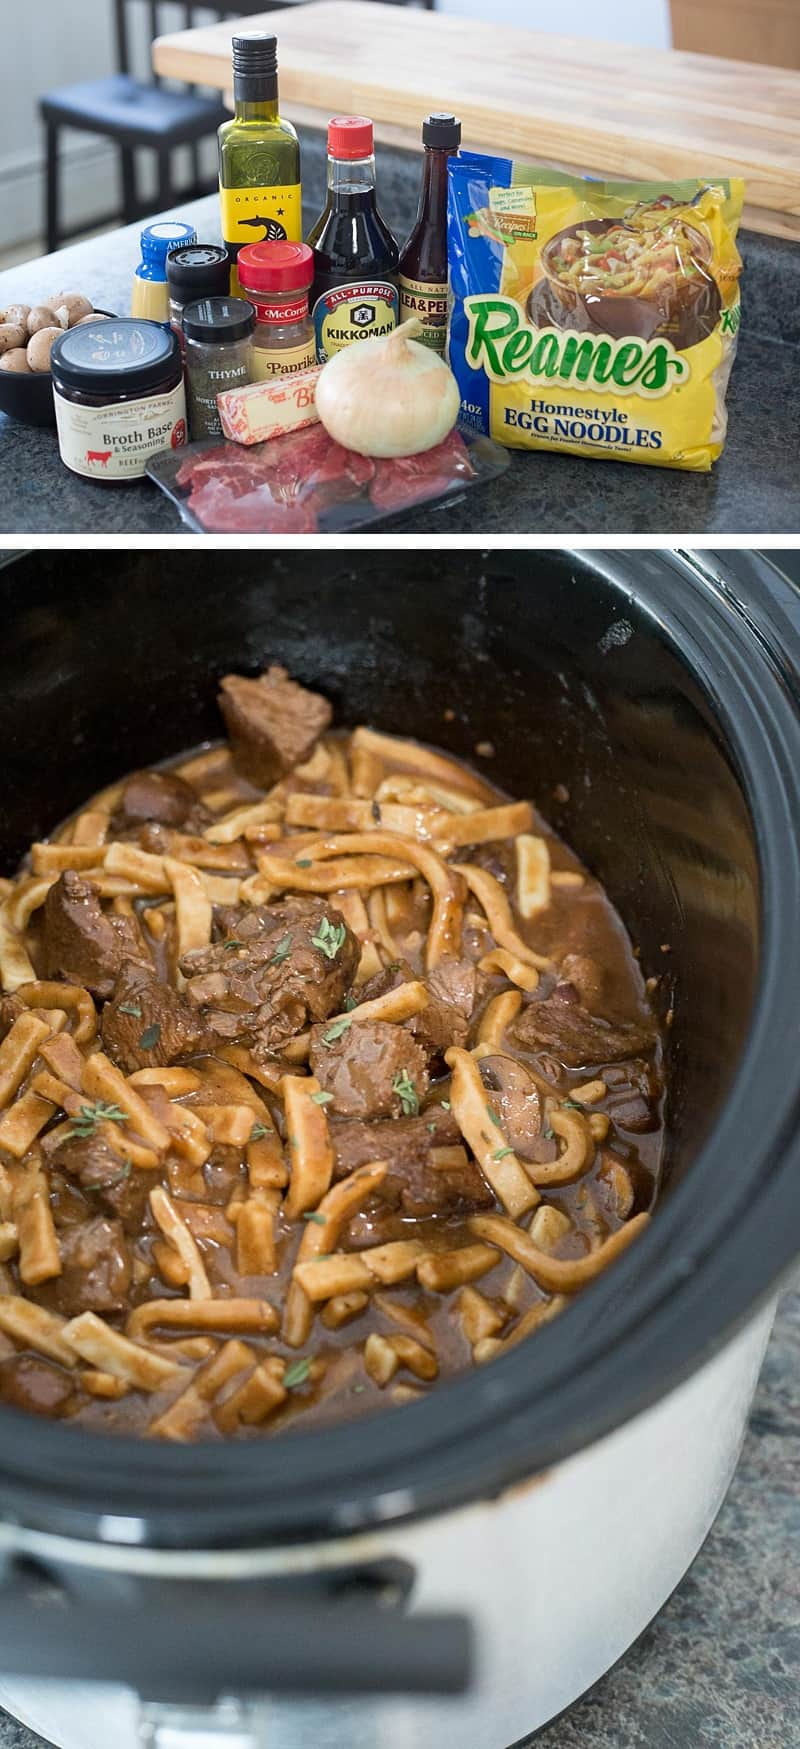 This Slow-Cooker Stroganoff recipe is so simple and DELICIOUS, perfect for a chilly day. Just pop it in the crock pot and come home to a delicious family meal. #recipe #homemadegoodness #slowcooker #crockpot *My family loves Beef Stroganoff. These thick egg noodles are the best!